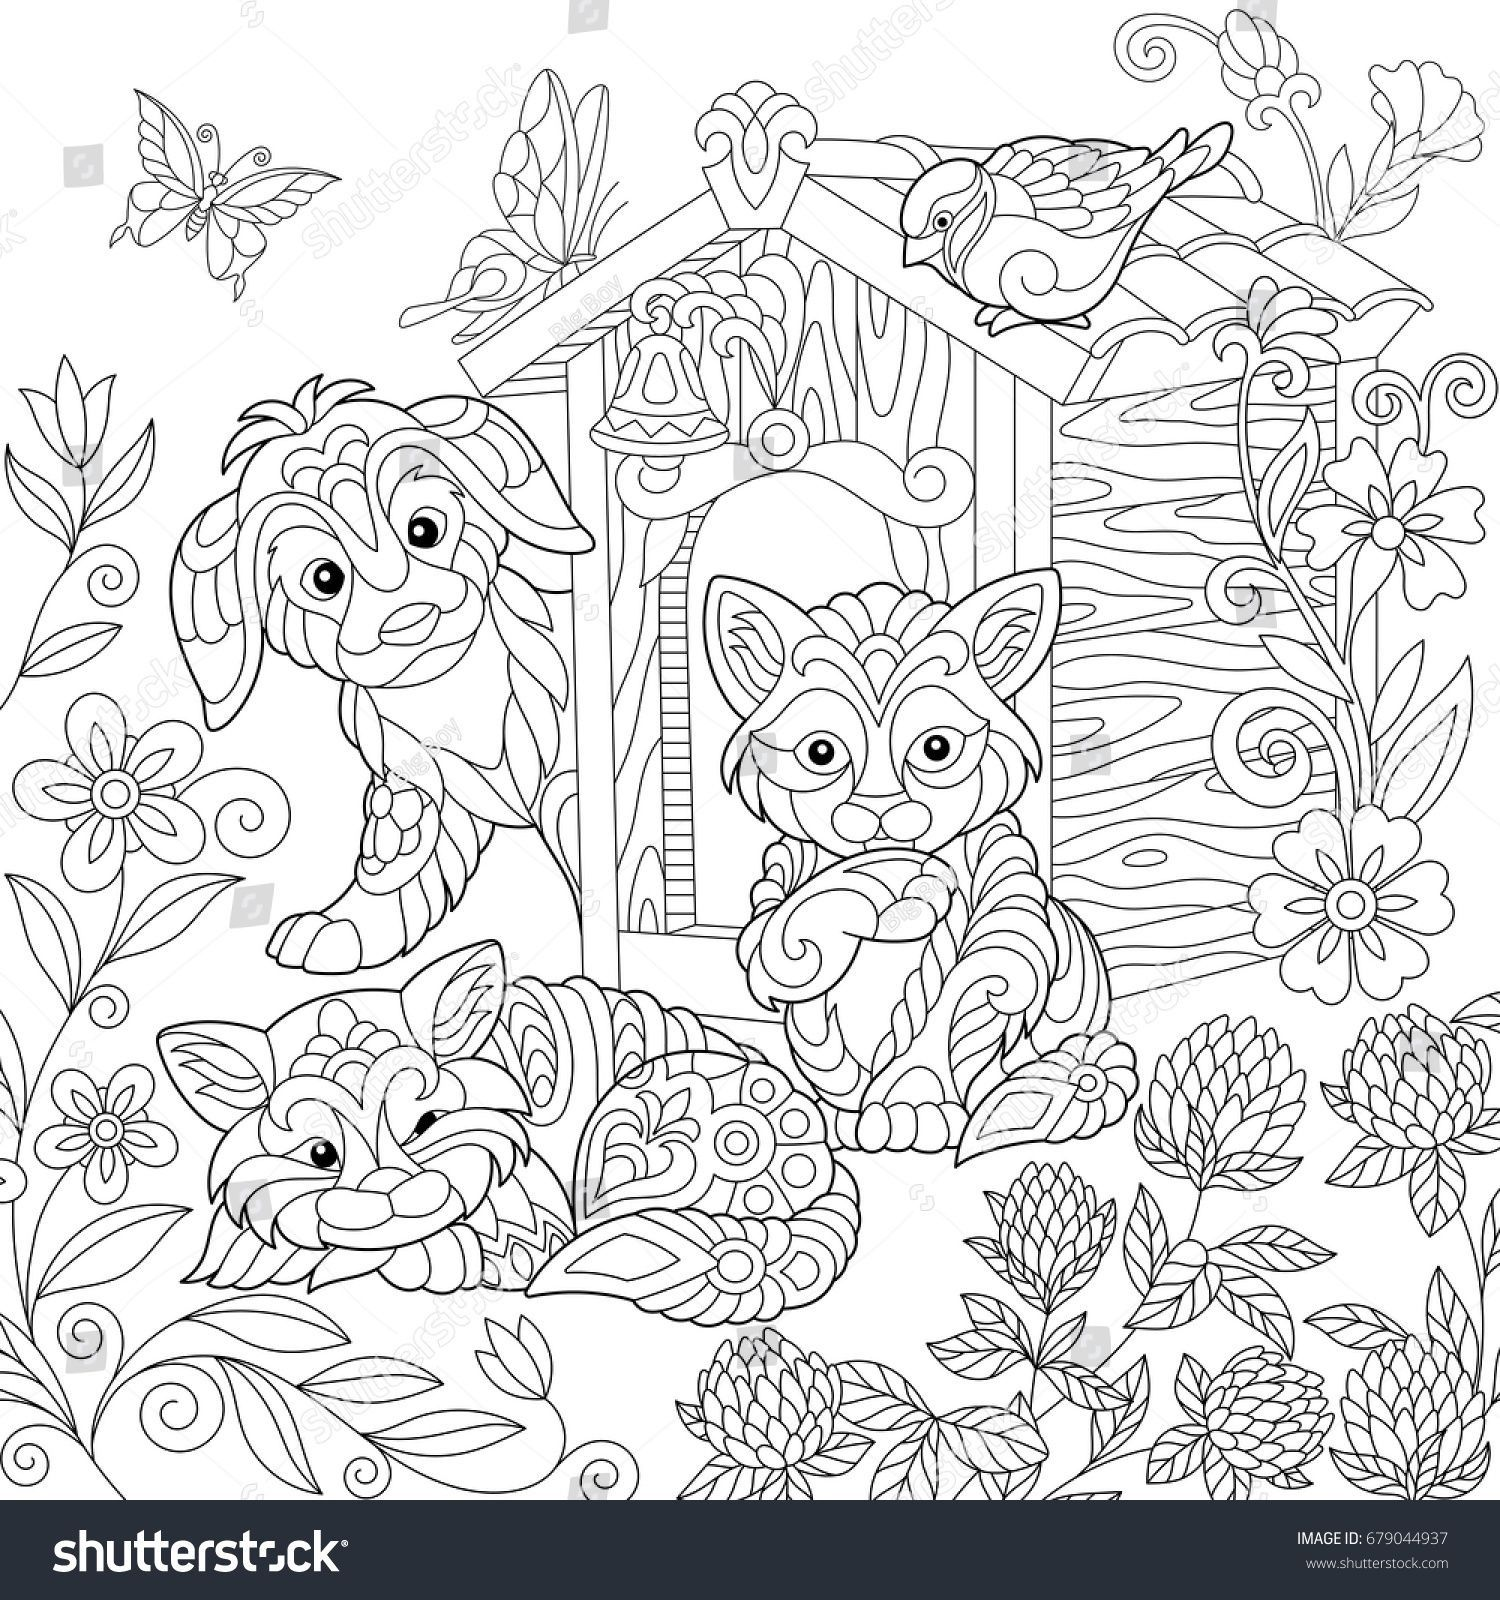 25 Coloring Pages for Couples | Coloring Pages | Dog ...